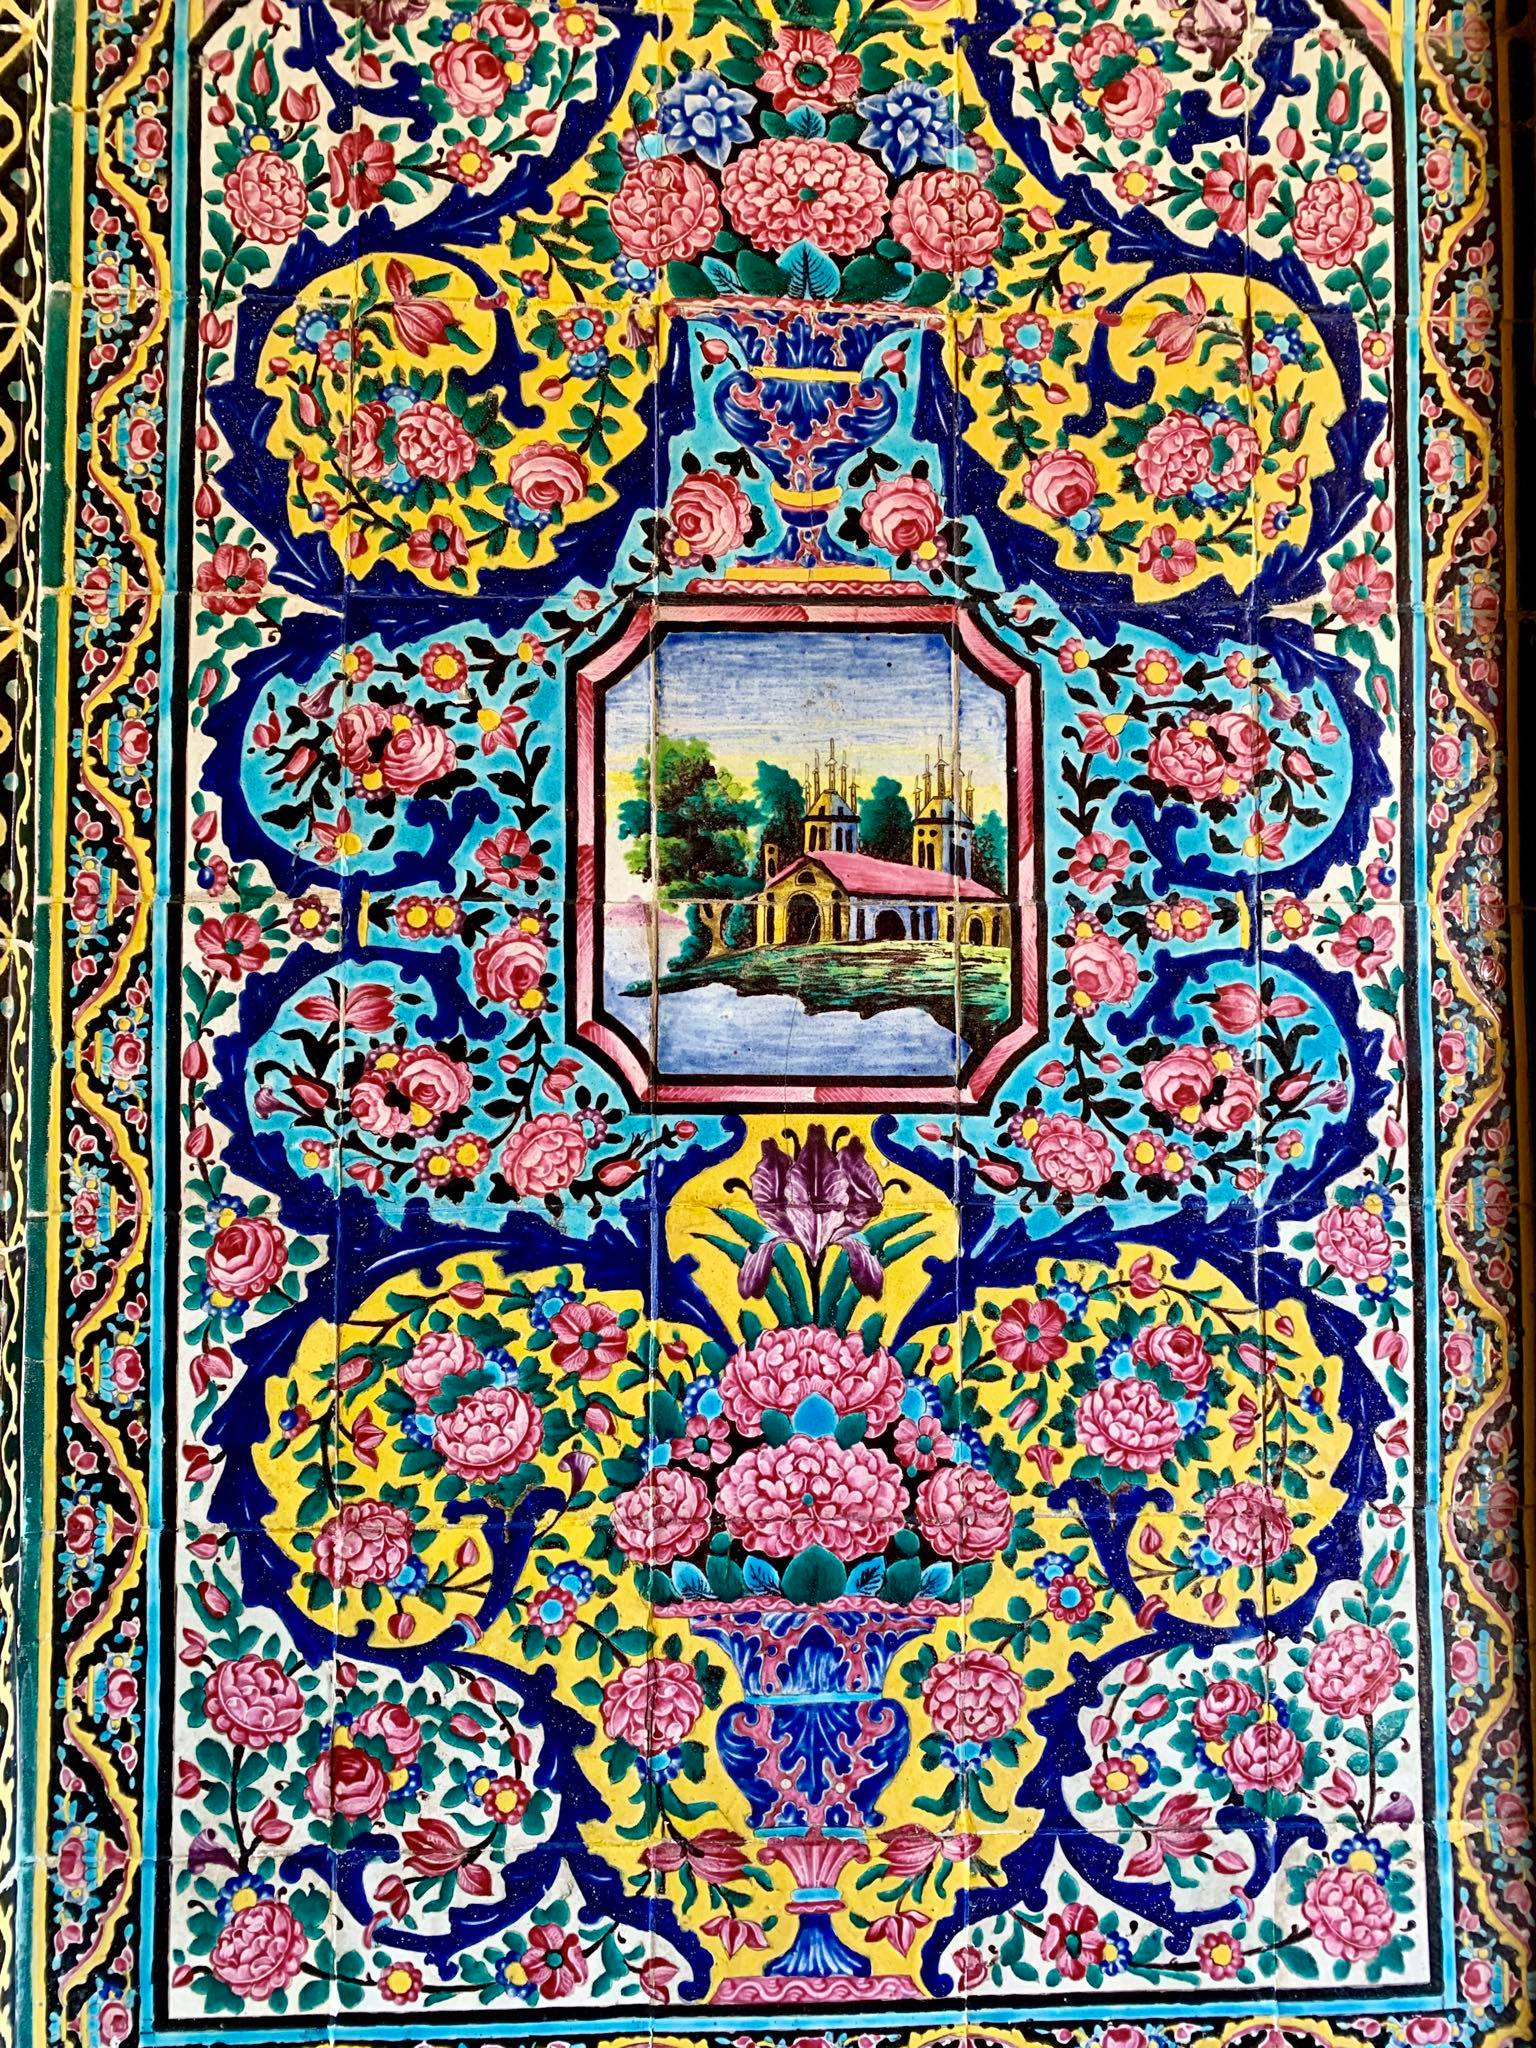 Kach Solo Travels in 2019 Full day tour of Shiraz45.jpg